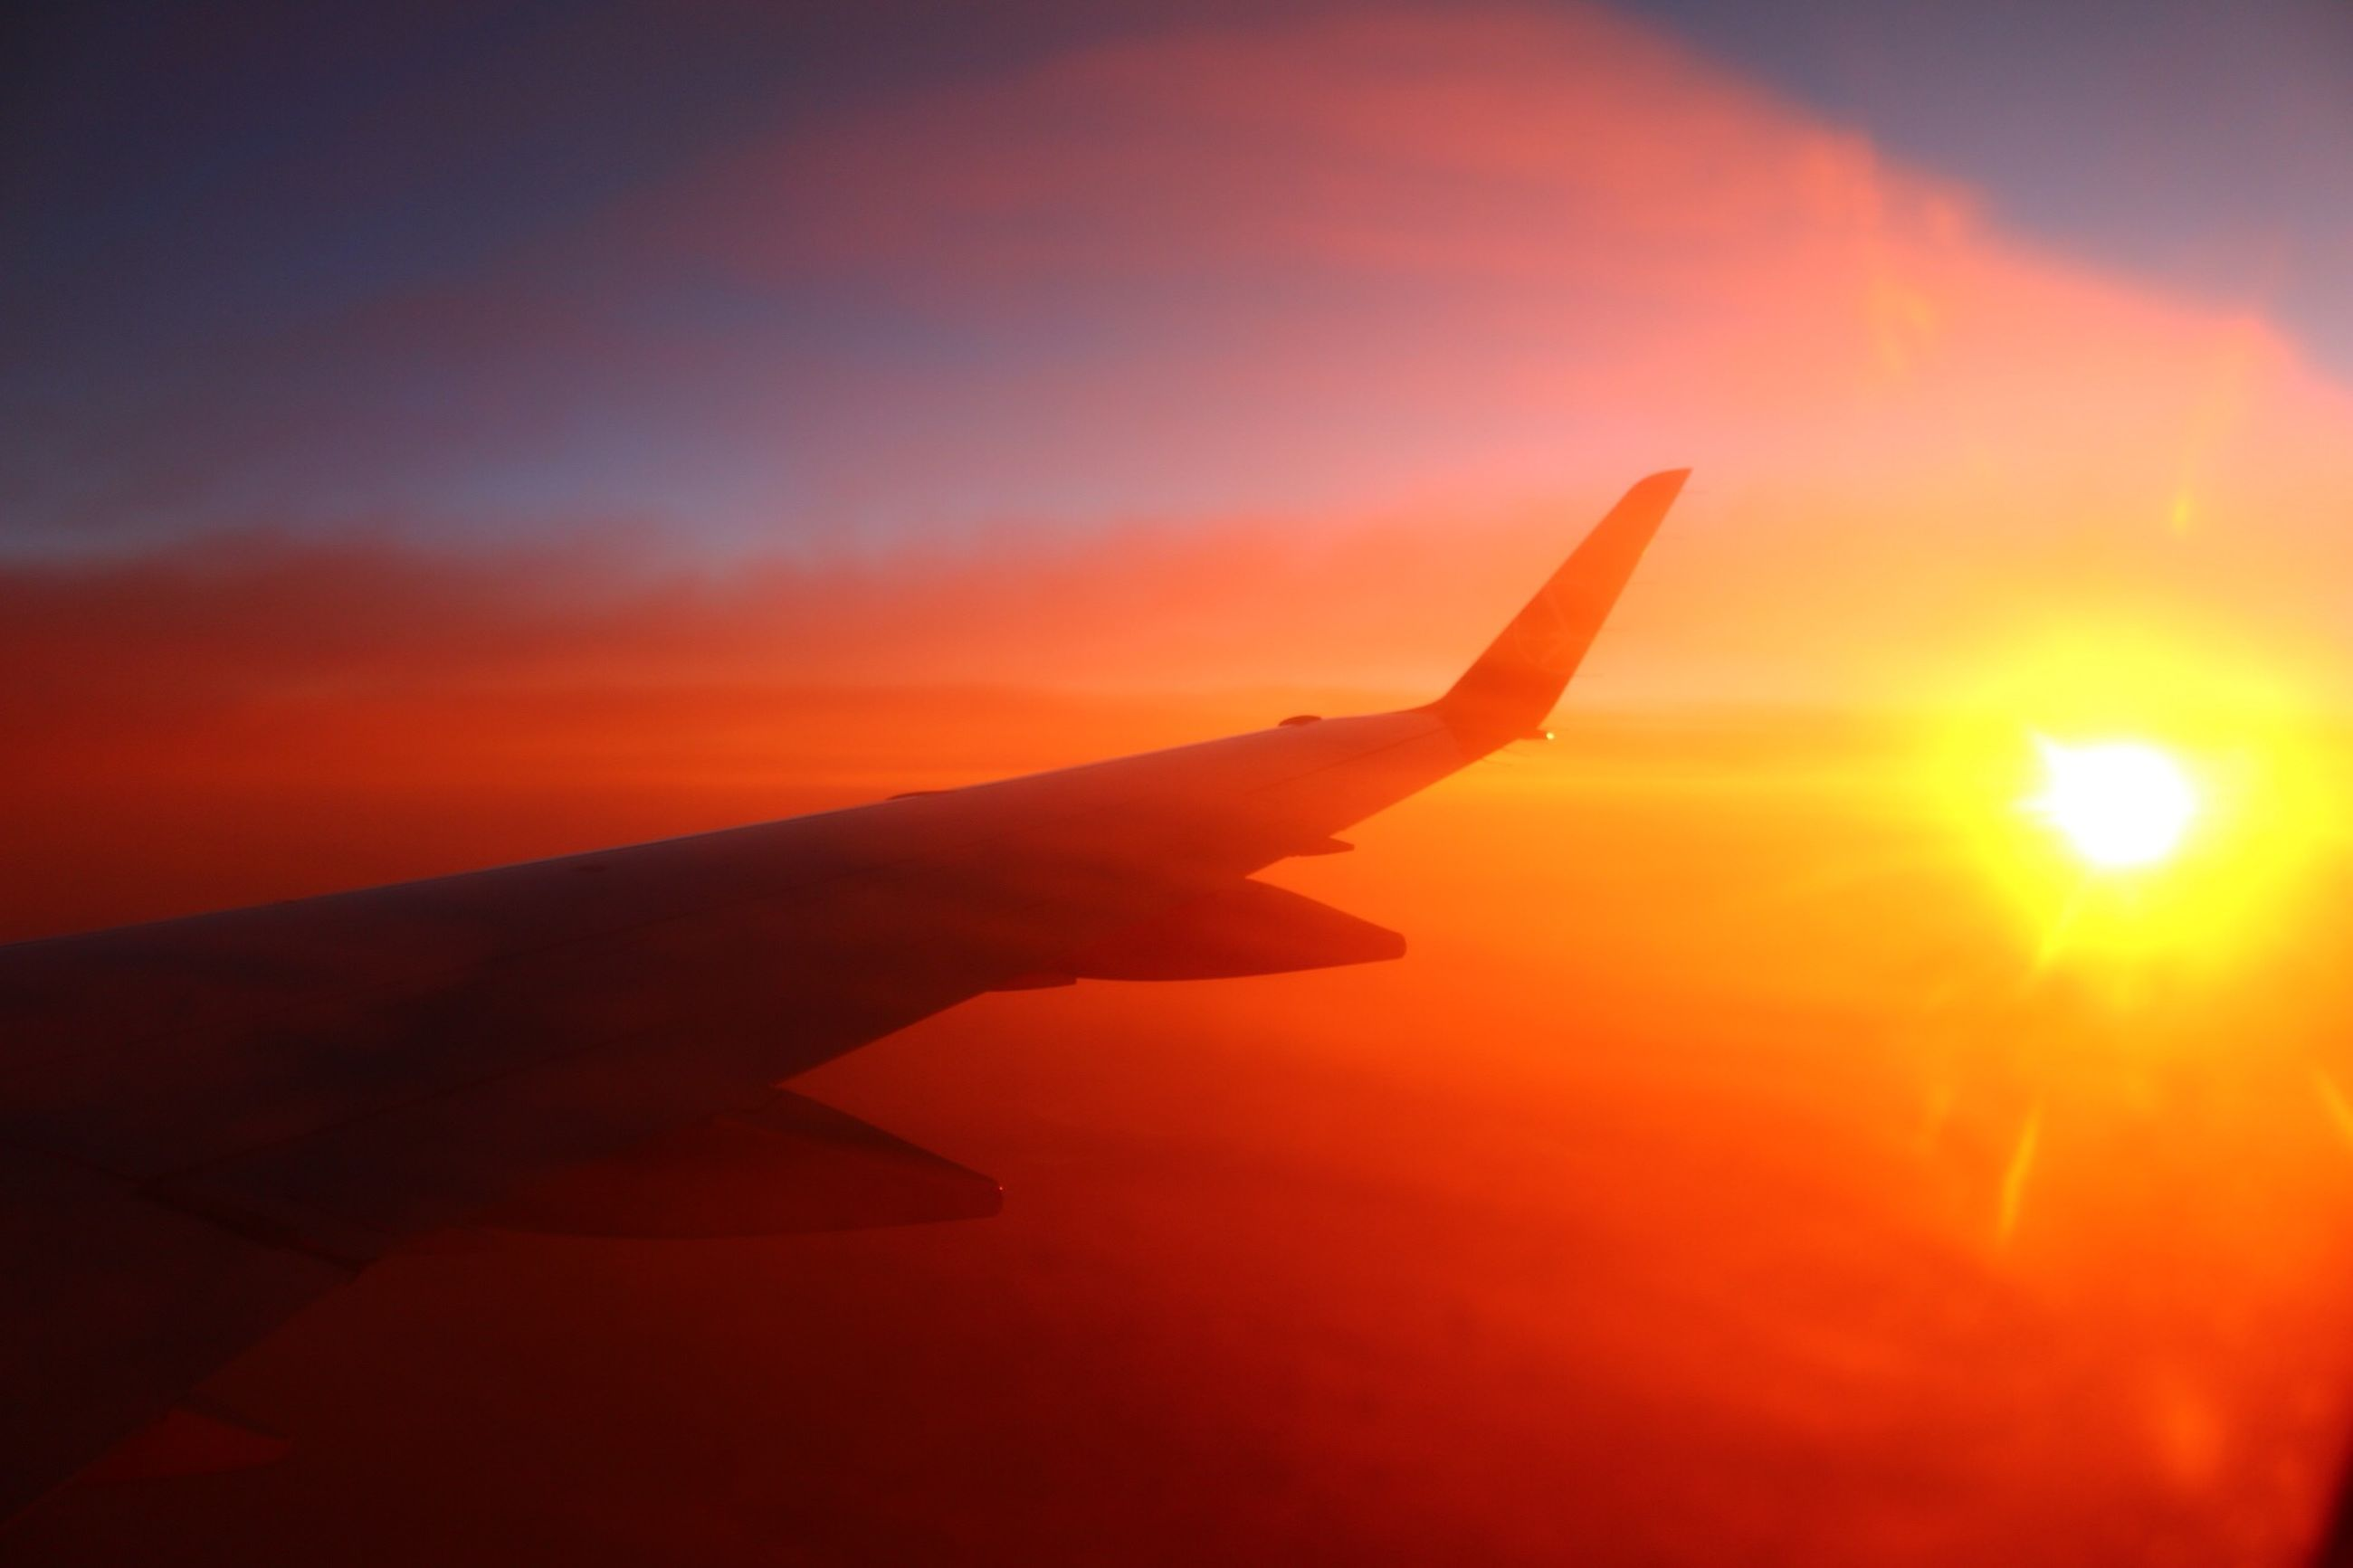 sunset, sun, orange color, part of, sky, flying, person, cropped, silhouette, airplane, sunlight, one person, human finger, cloud - sky, mid-air, aircraft wing, sunbeam, beauty in nature, nature, cloud